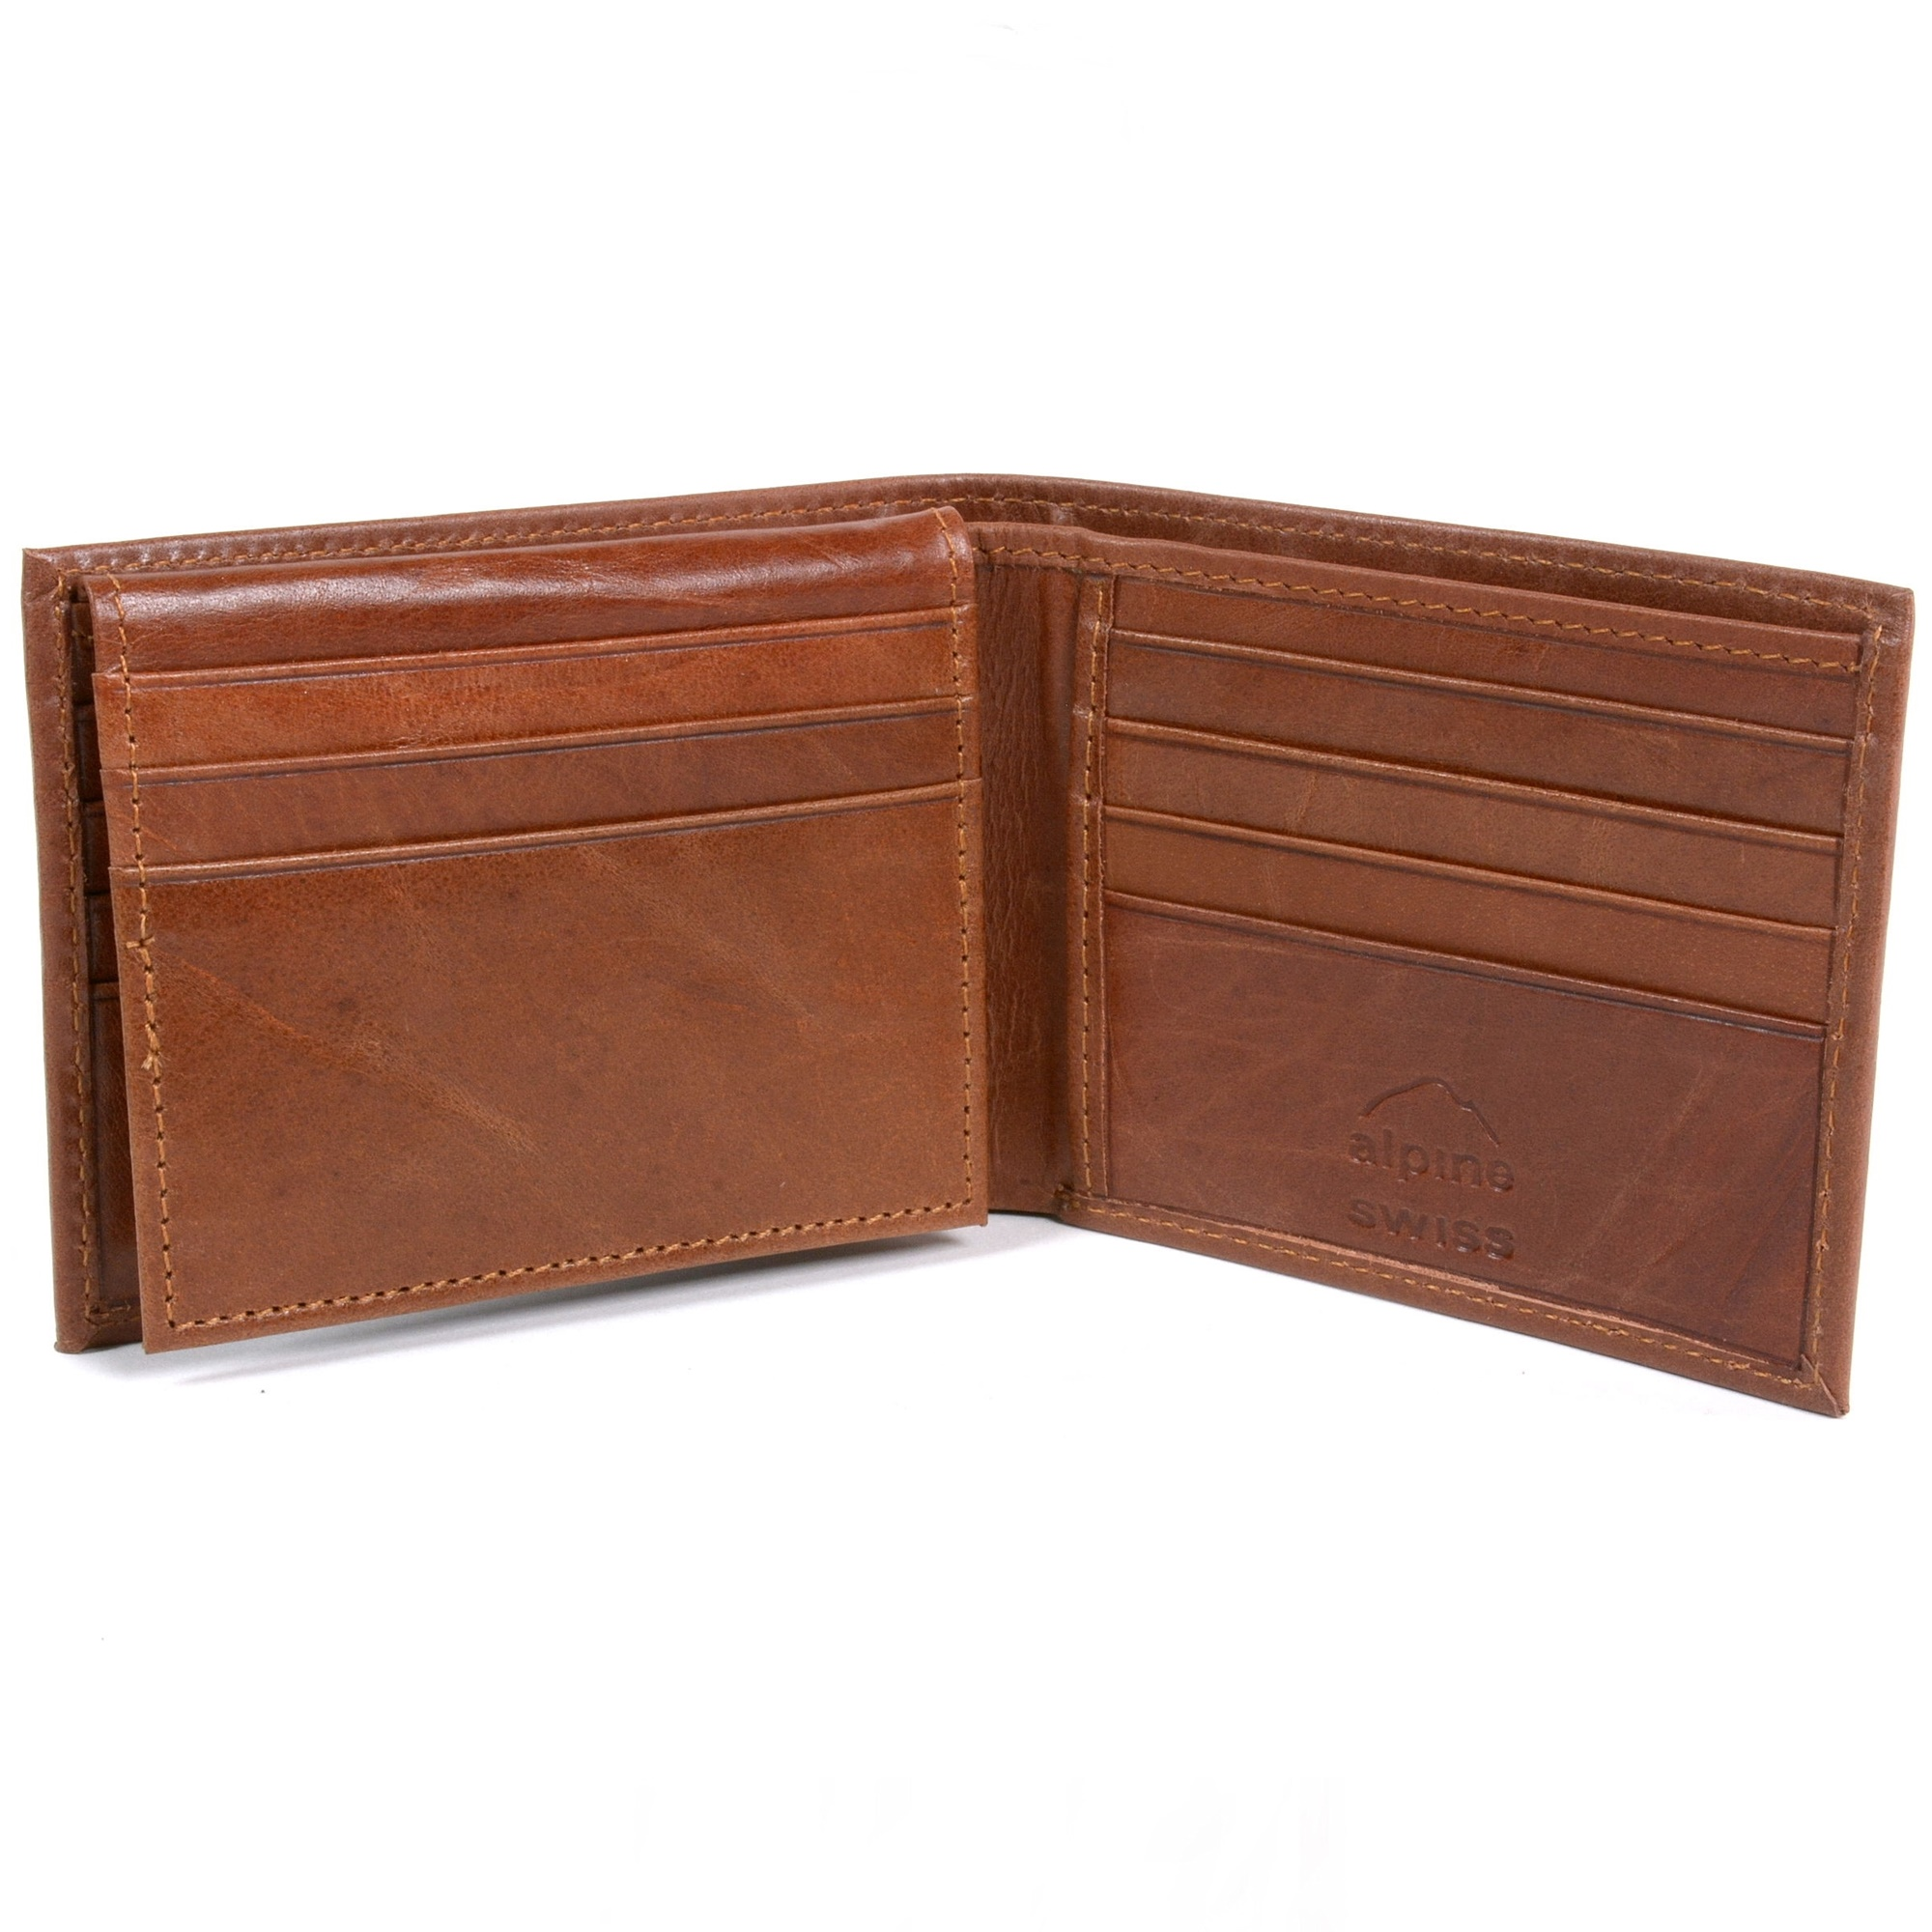 RFID-SAFE-Alpine-Swiss-Mens-Deluxe-Wallet-Genuine-Leather-14-Pocket-ID-Bifold thumbnail 24